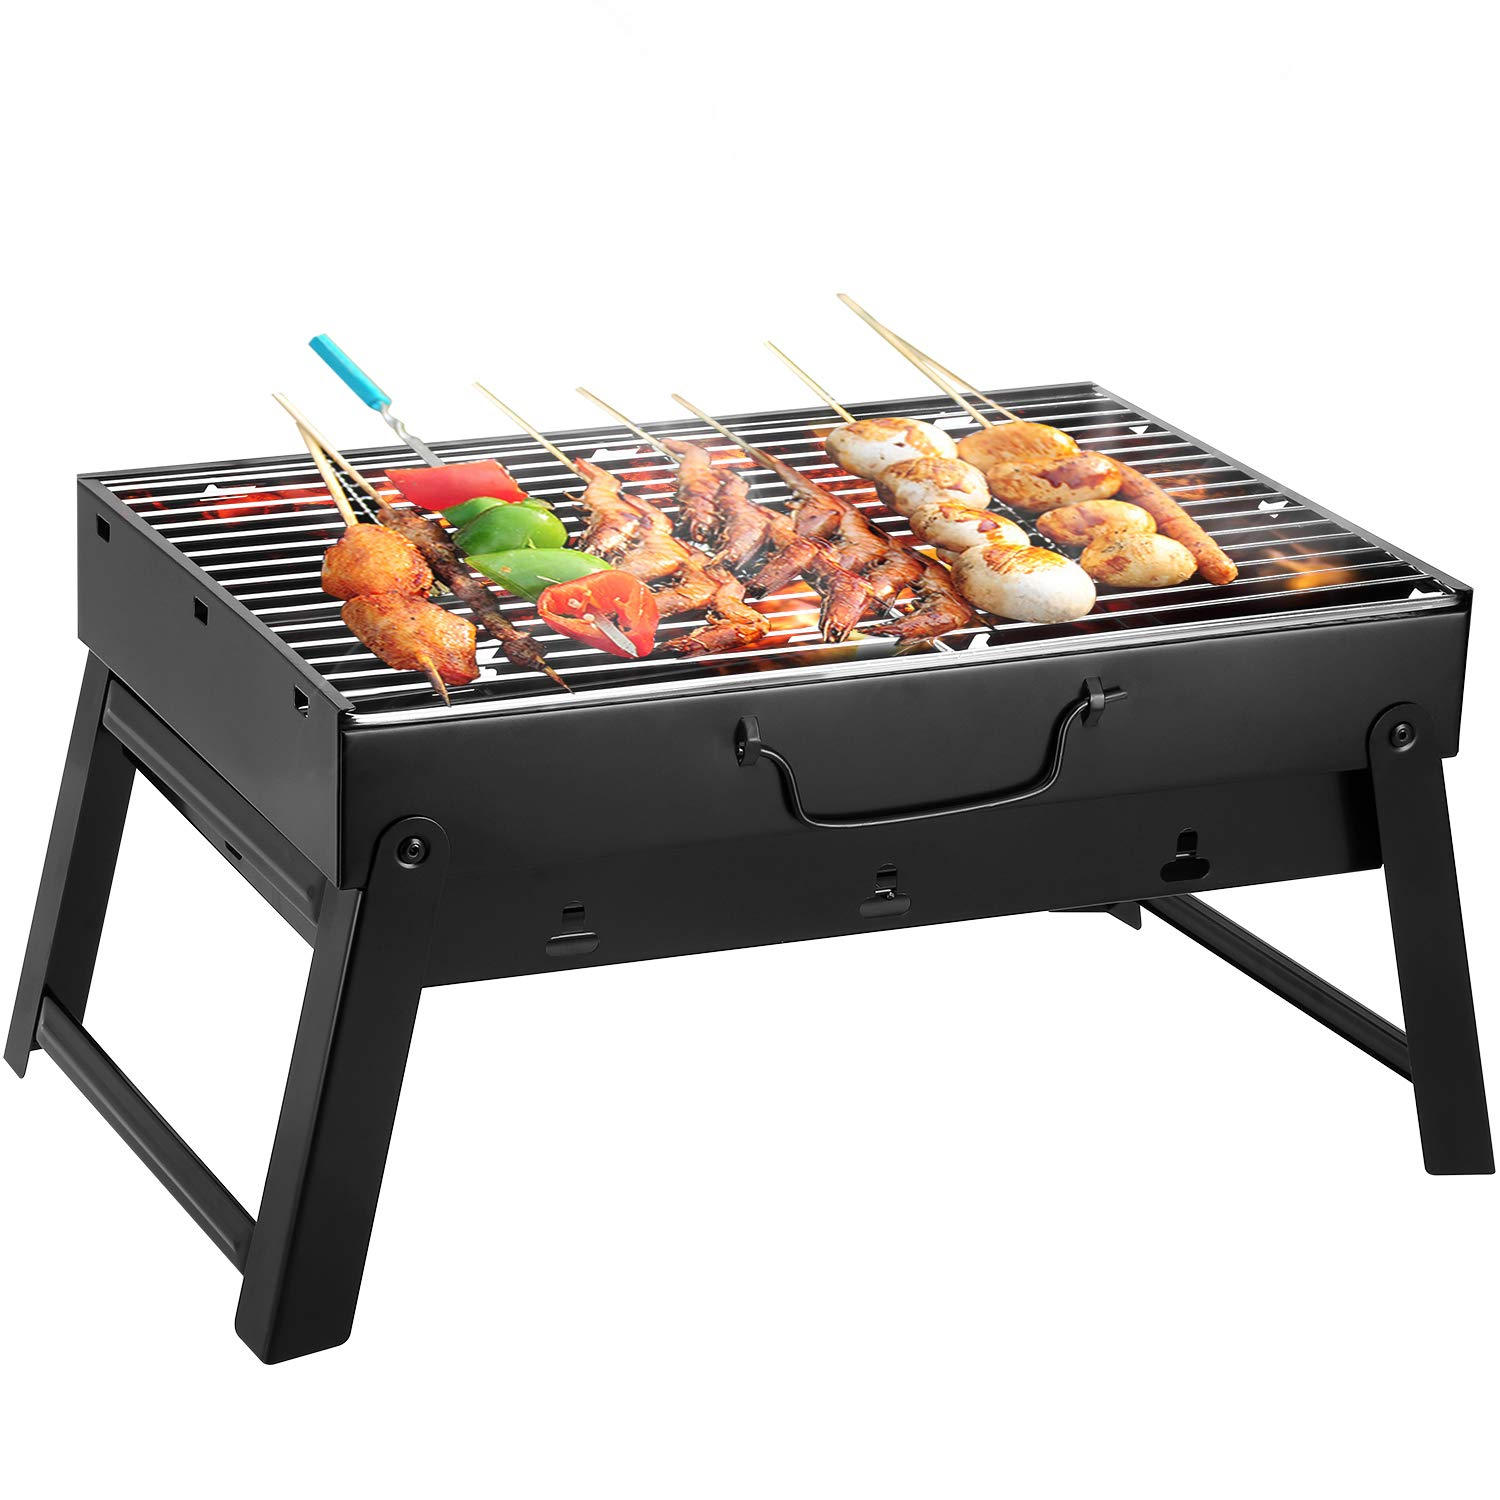 AGM BBQ Charcoal Grill, Folding Portable Lightweight Barbecue Grill Tools for Outdoor Grilling Cooking Camping Hiking Picnics Tailgating Backpacking Party by AGM